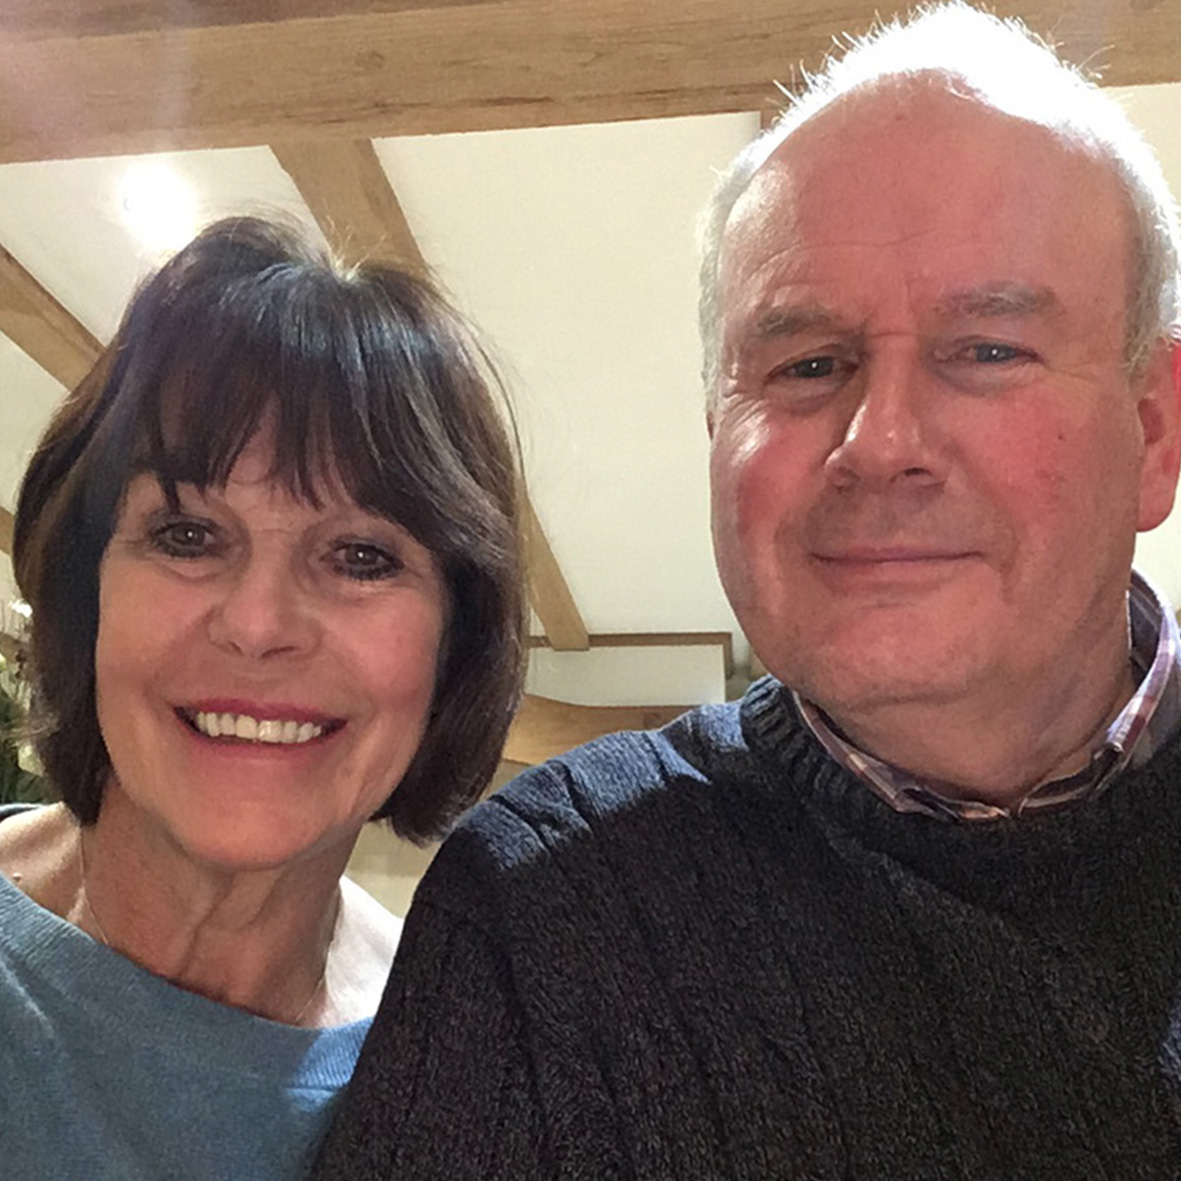 Hugh & Pam Jarvis - Pam & Hugh are the joint owners of Dassett Gold (aka Ricky). This is the first venture into eventing and they are looking forward to learning about the disciplines involved, which are very different from their other interests of flat and National Hunt racing.